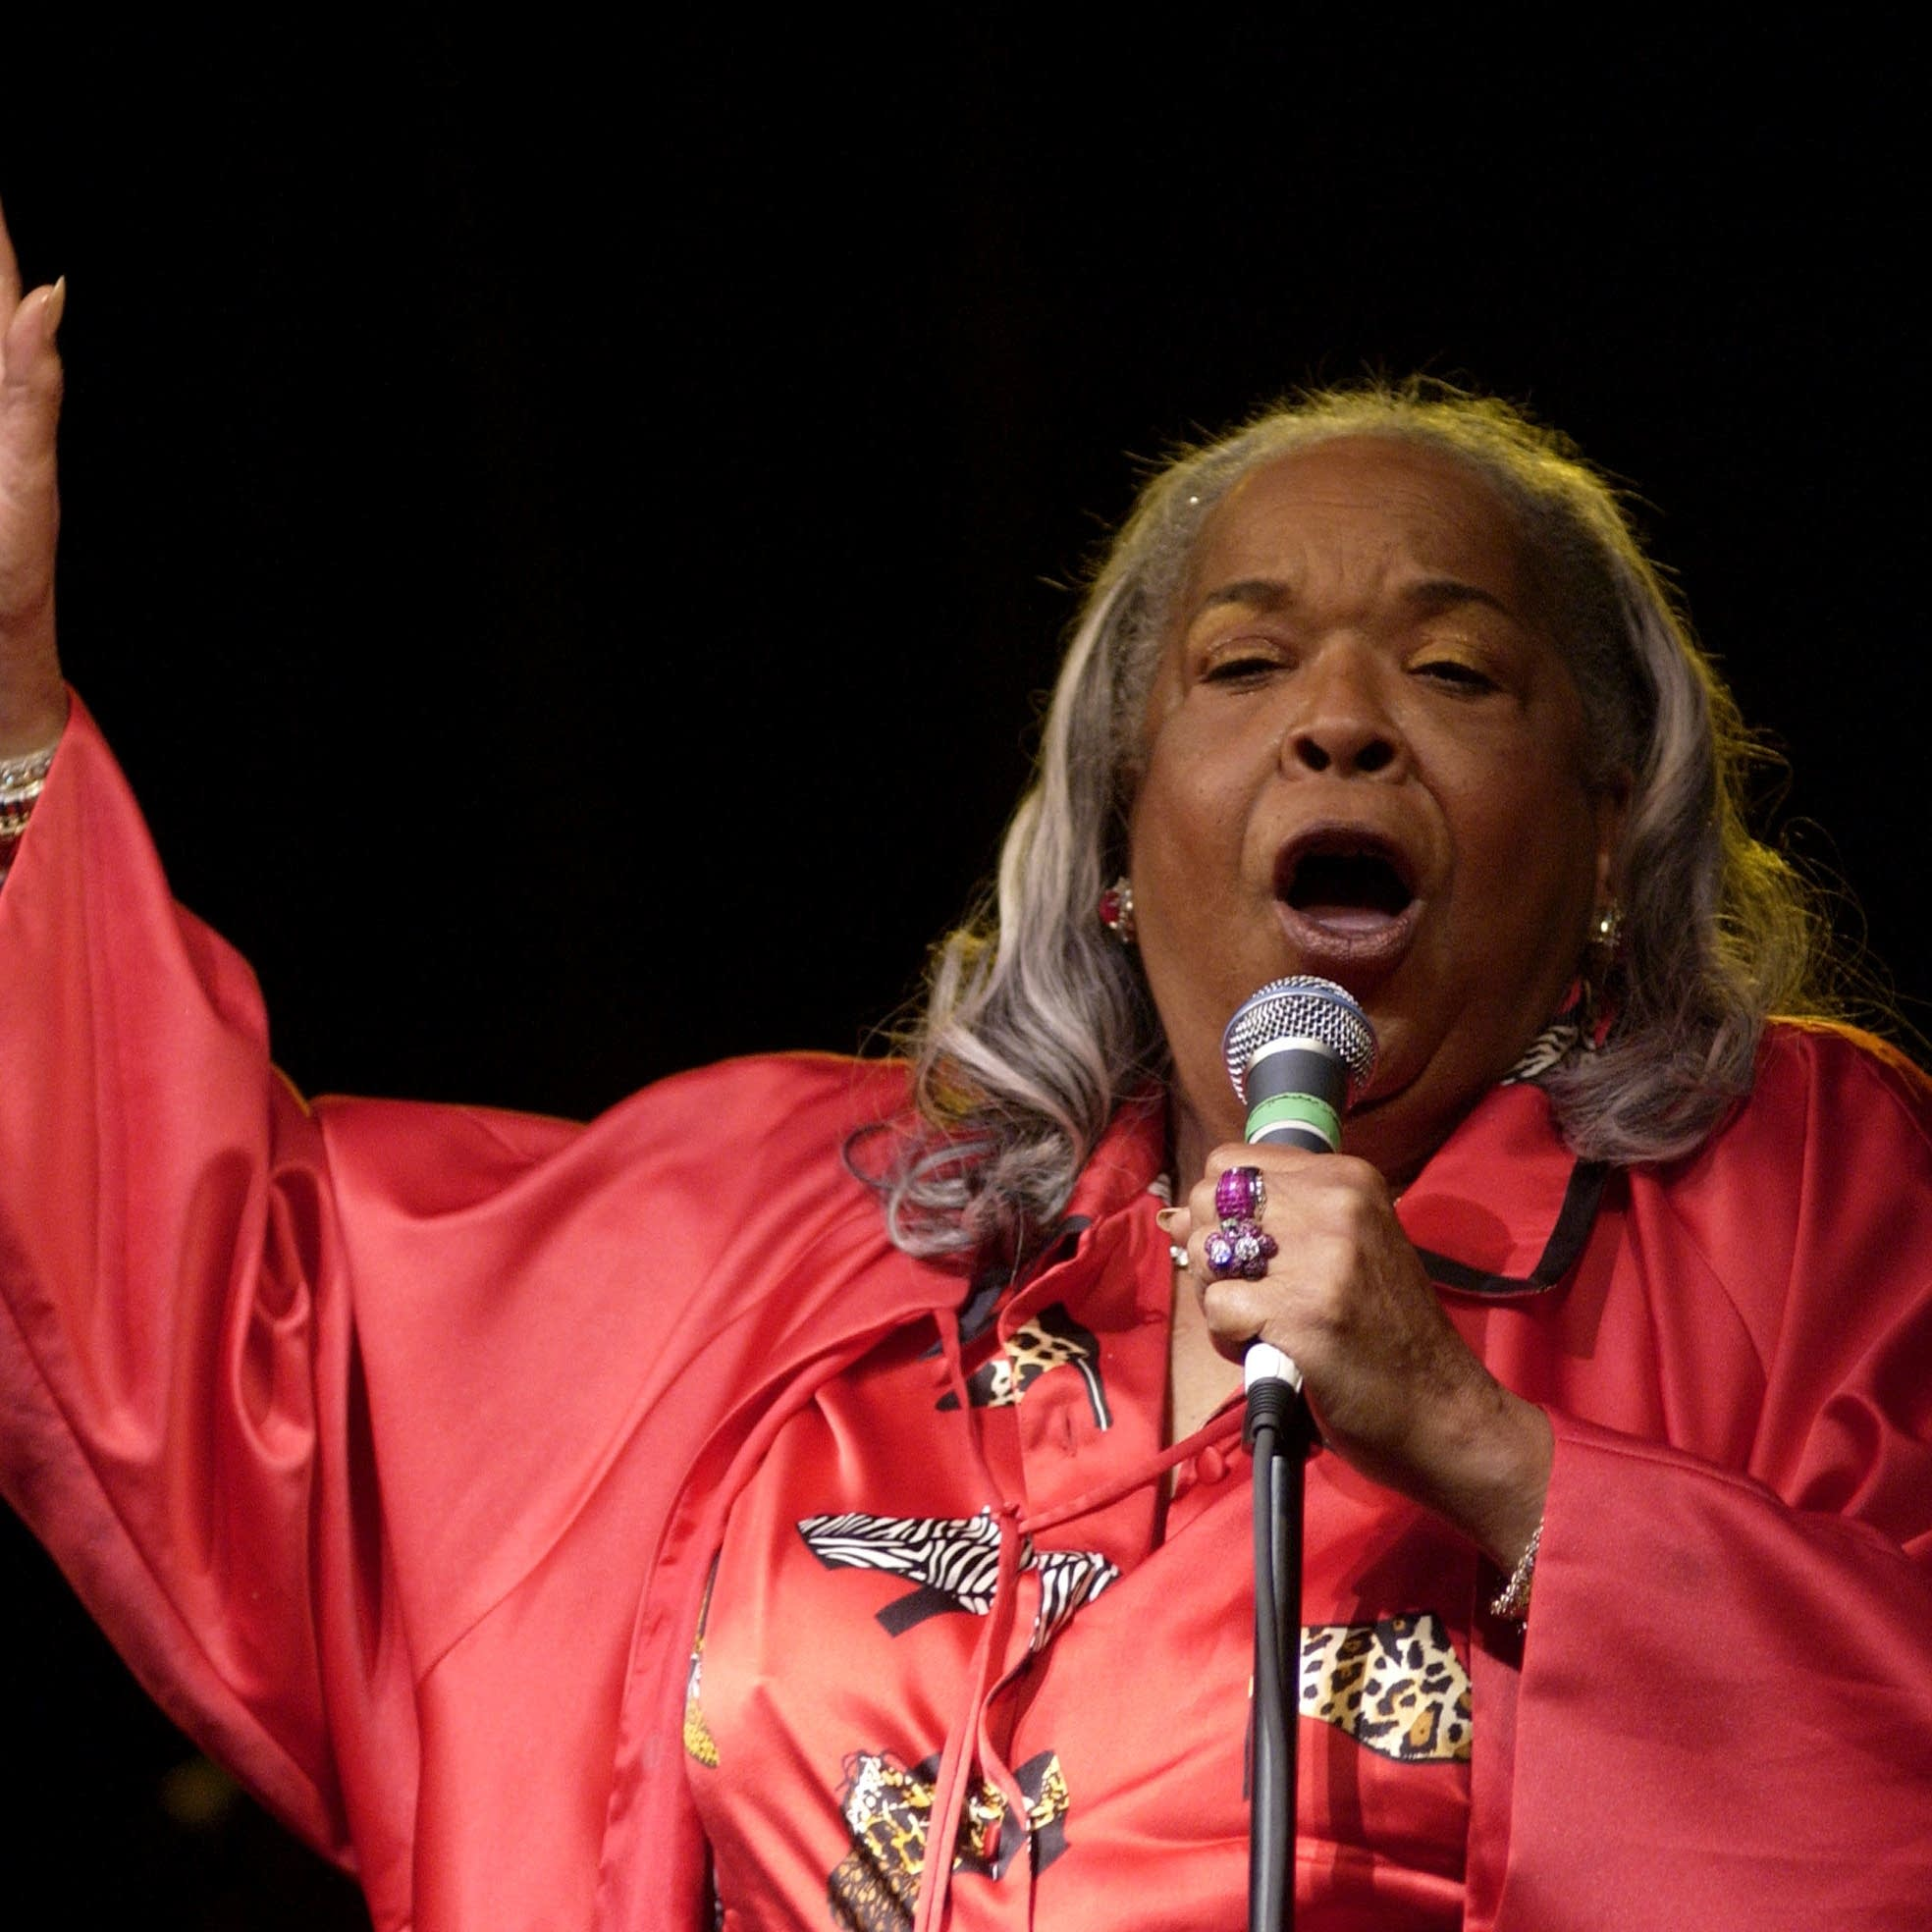 Della Reese performs at B.B. King's 80th birthday celebration in 2005.